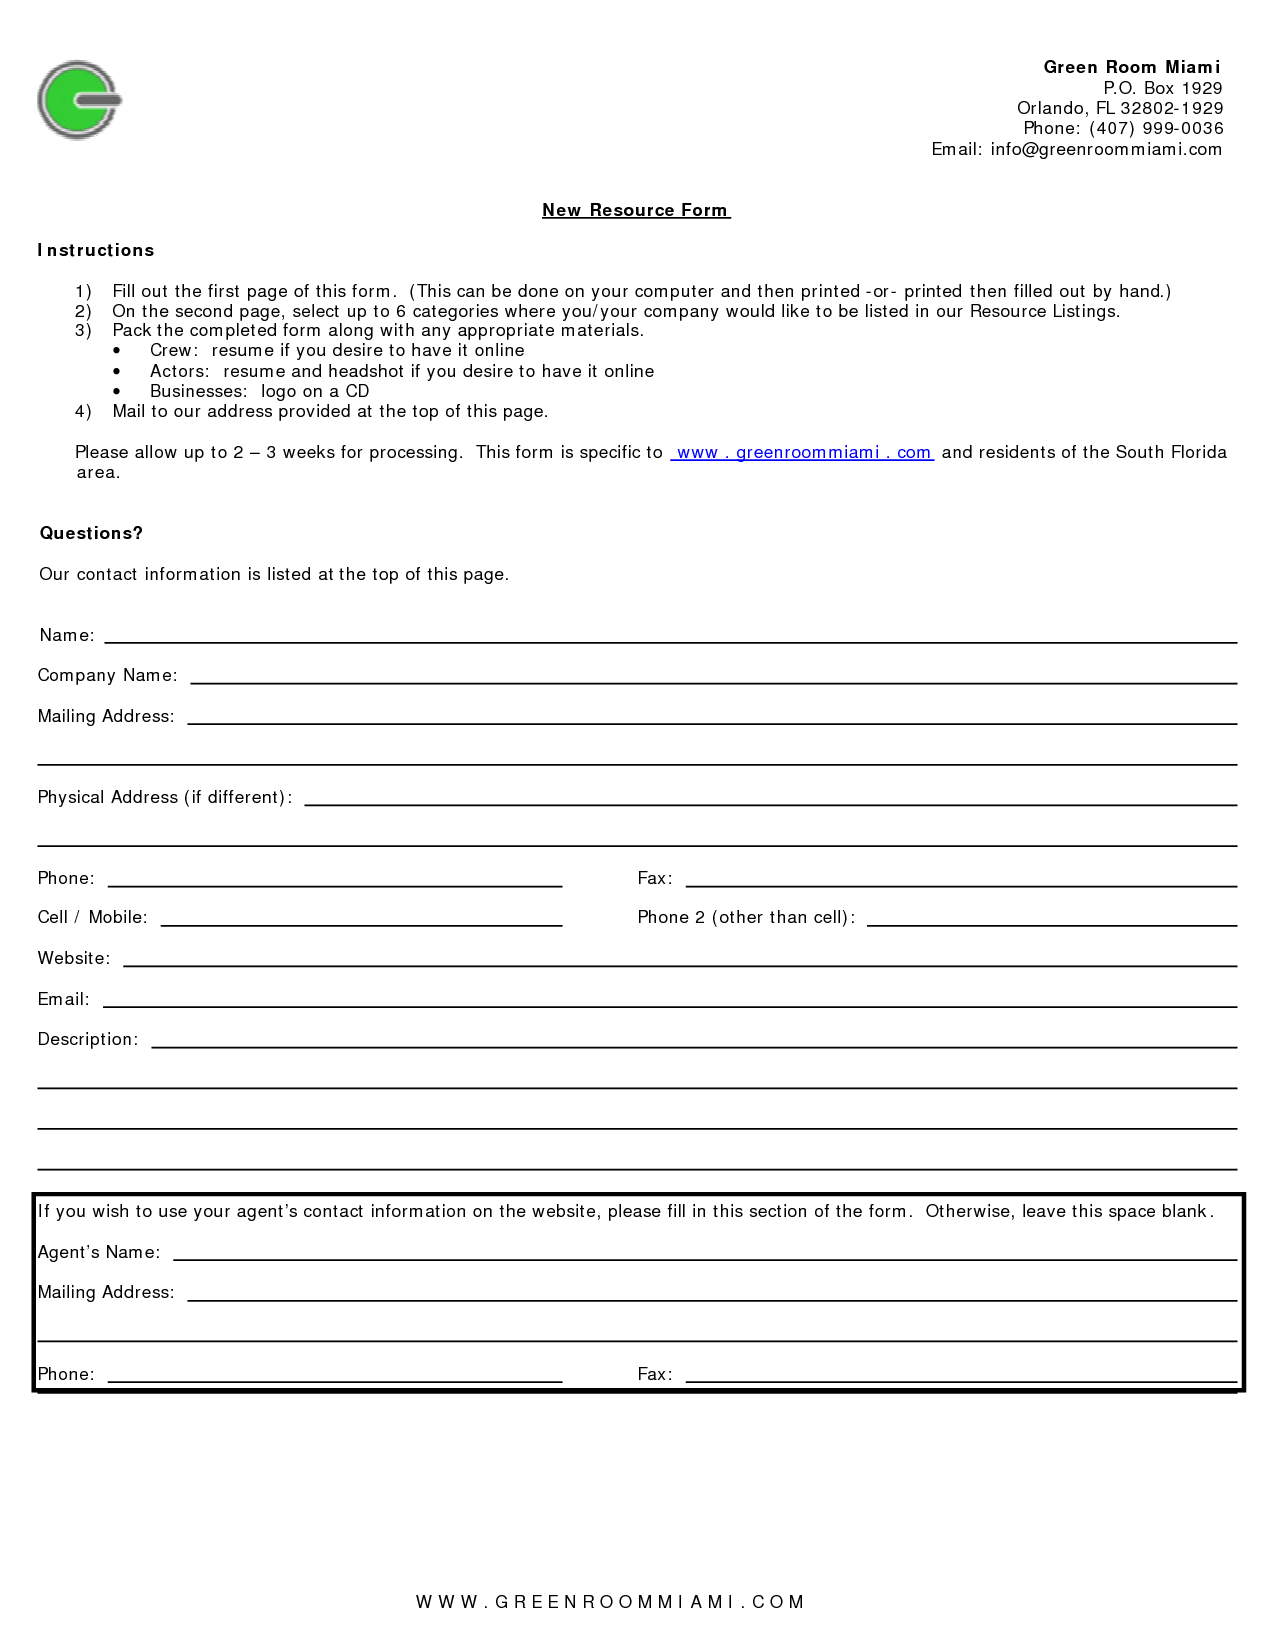 Fill In The Blank Resume